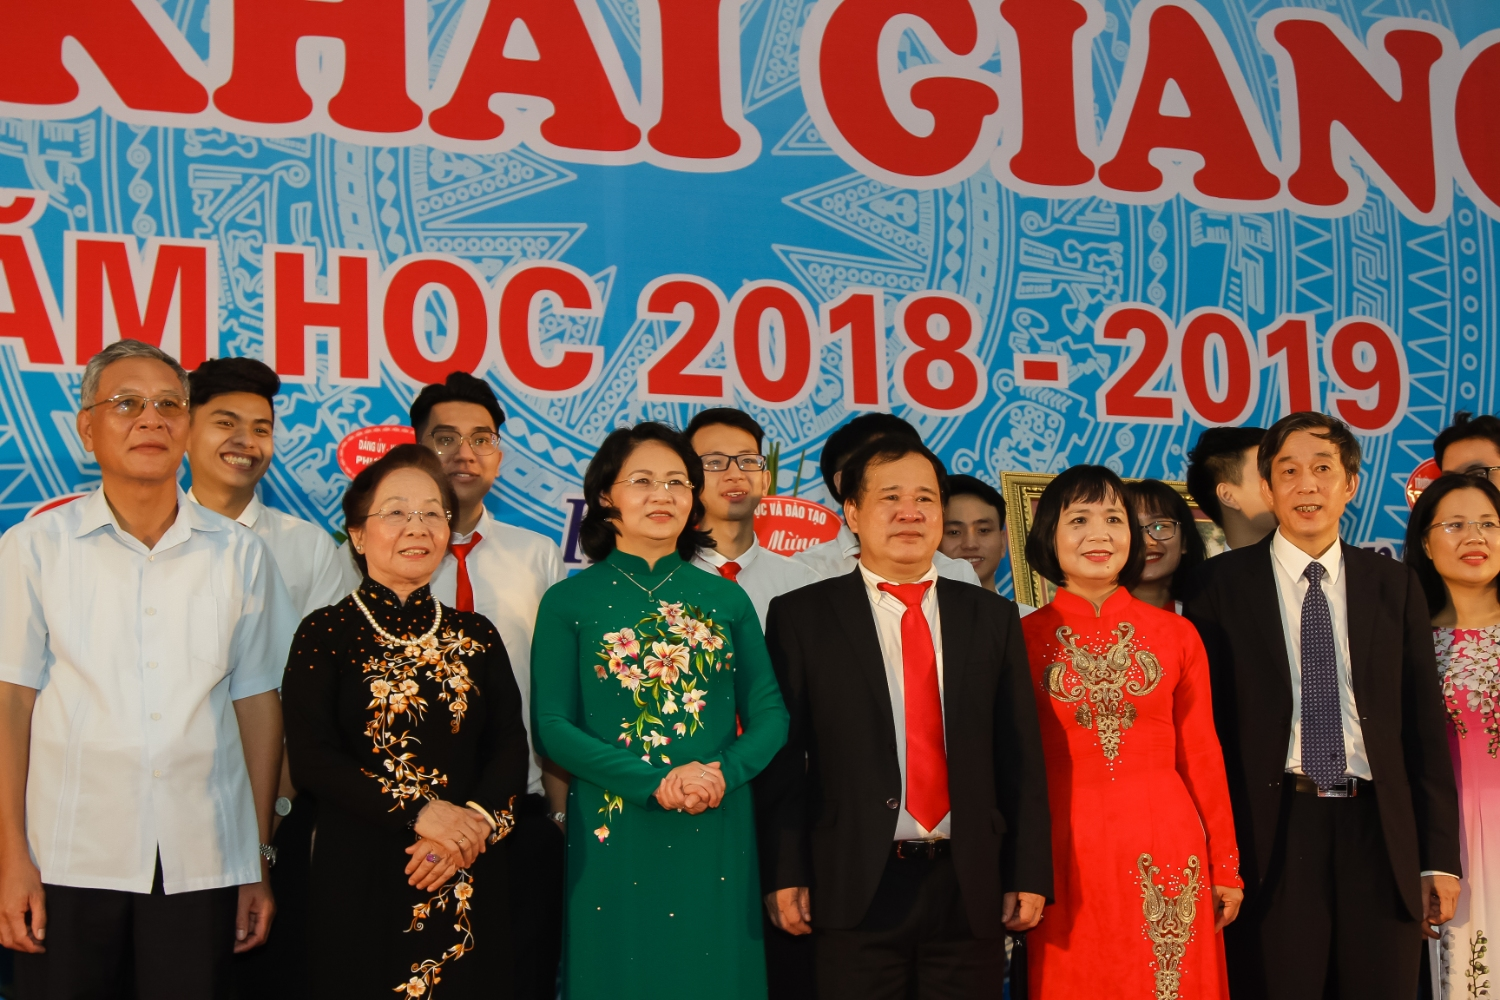 VICE PRESIDENT DANG THI NGOC THINH ATTENDS OPENING CEREMONY OF SCHOOL YEAR 2018-2019 AT THUONGMAI UNIVERSITY